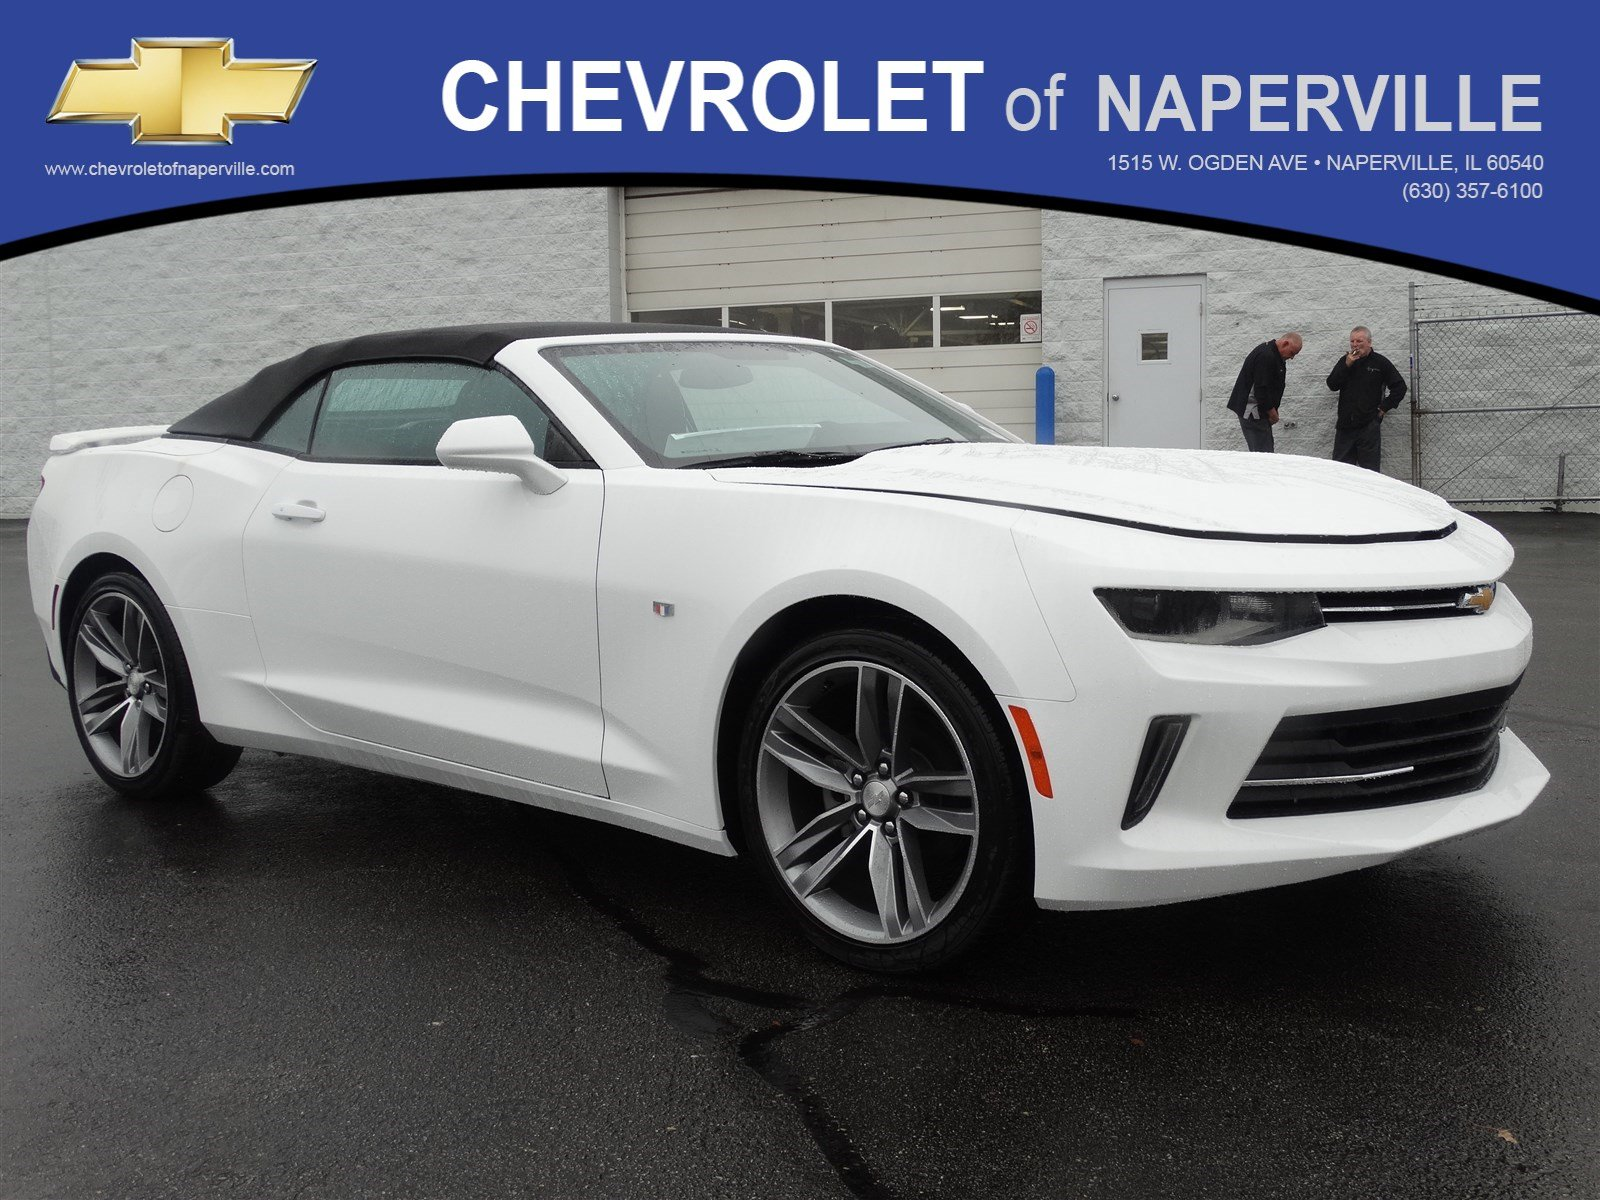 convertible hp news camaro the torque hennessey chevy report chevrolet unveils a